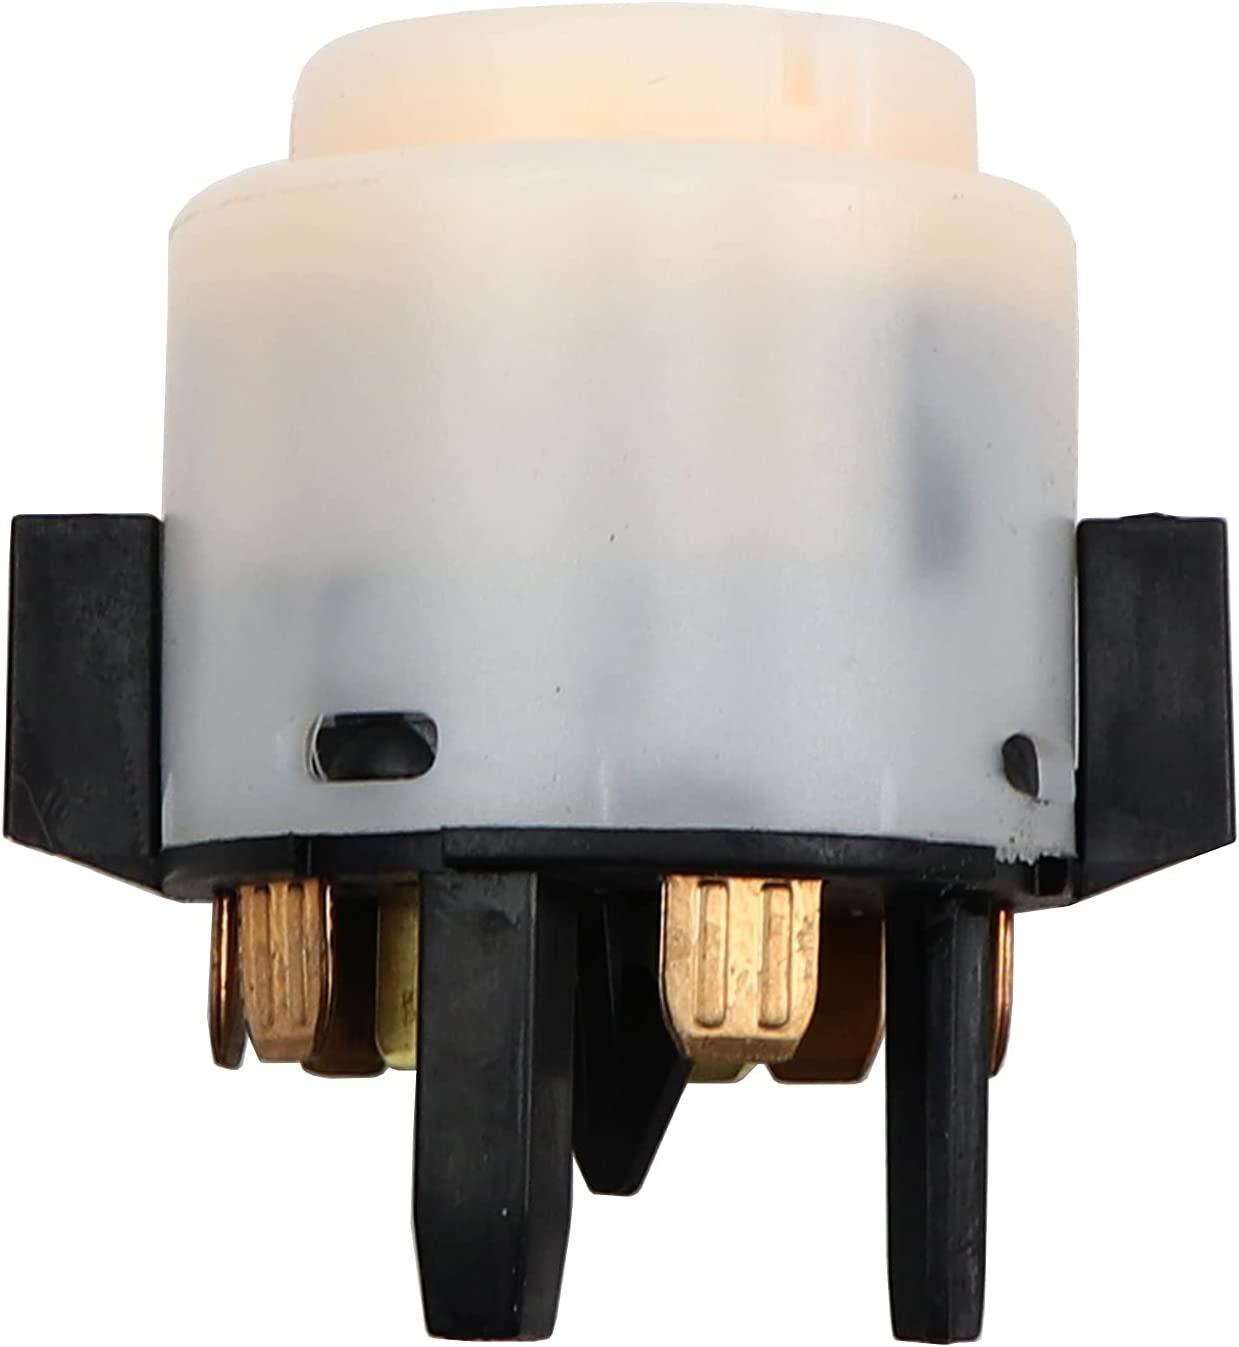 Beck Arnley 201-1790 Limited time for free shipping Starter Switch Max 47% OFF Ignition